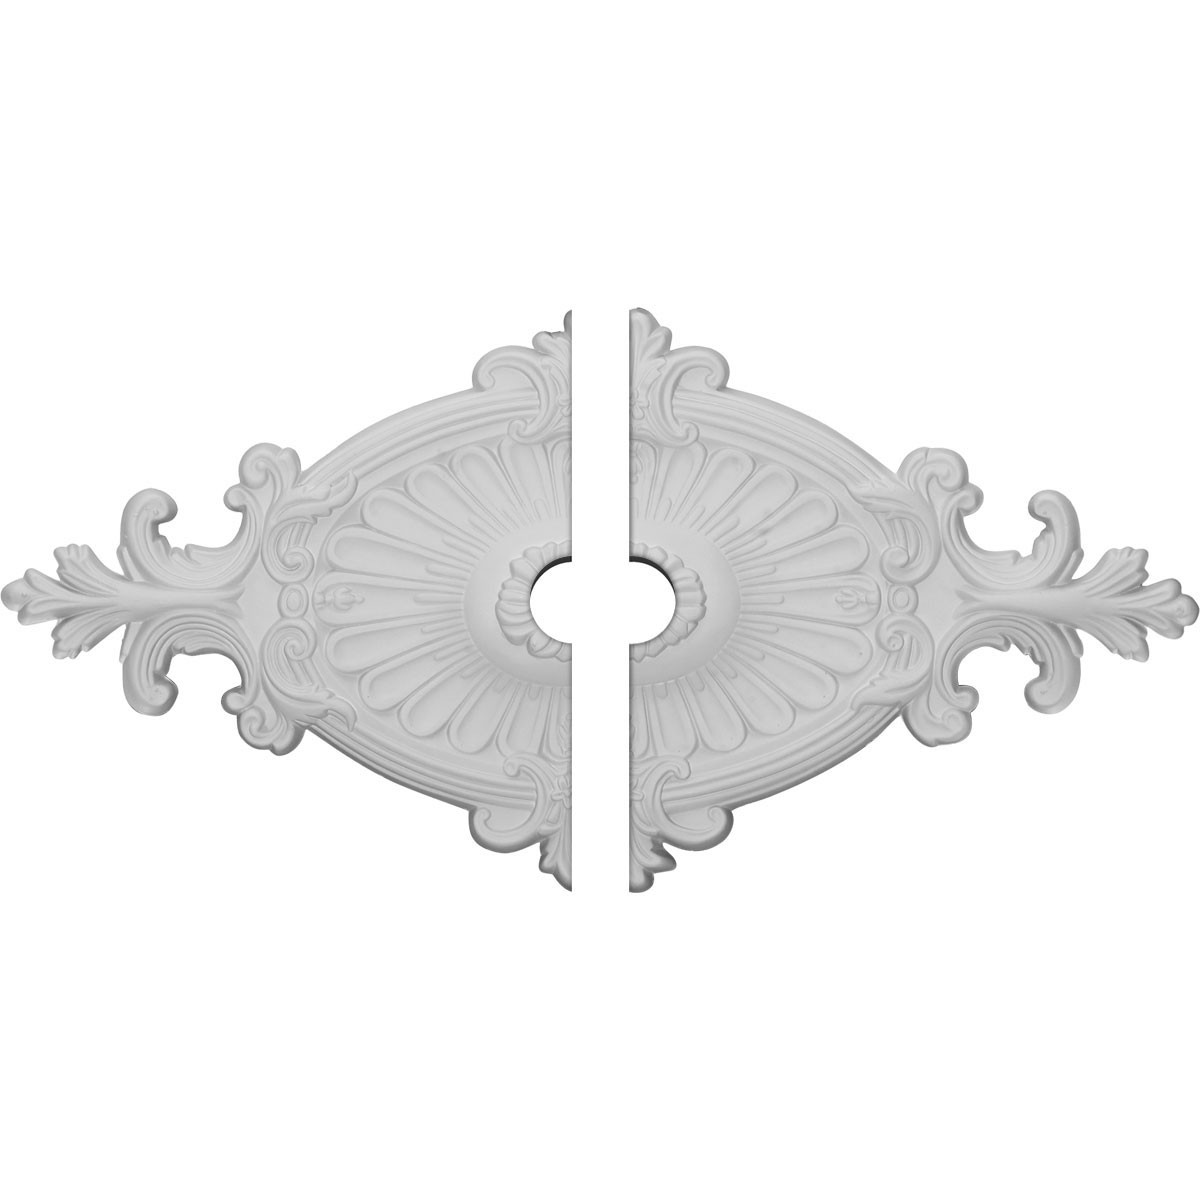 """EM-CM23RO12-03500 - 23 1/2""""W x 12 1/4""""H x 3 1/2""""ID x 1 1/2""""P Quentin Ceiling Medallion, Two Piece (Fits Canopies up to 3 1/2"""")"""